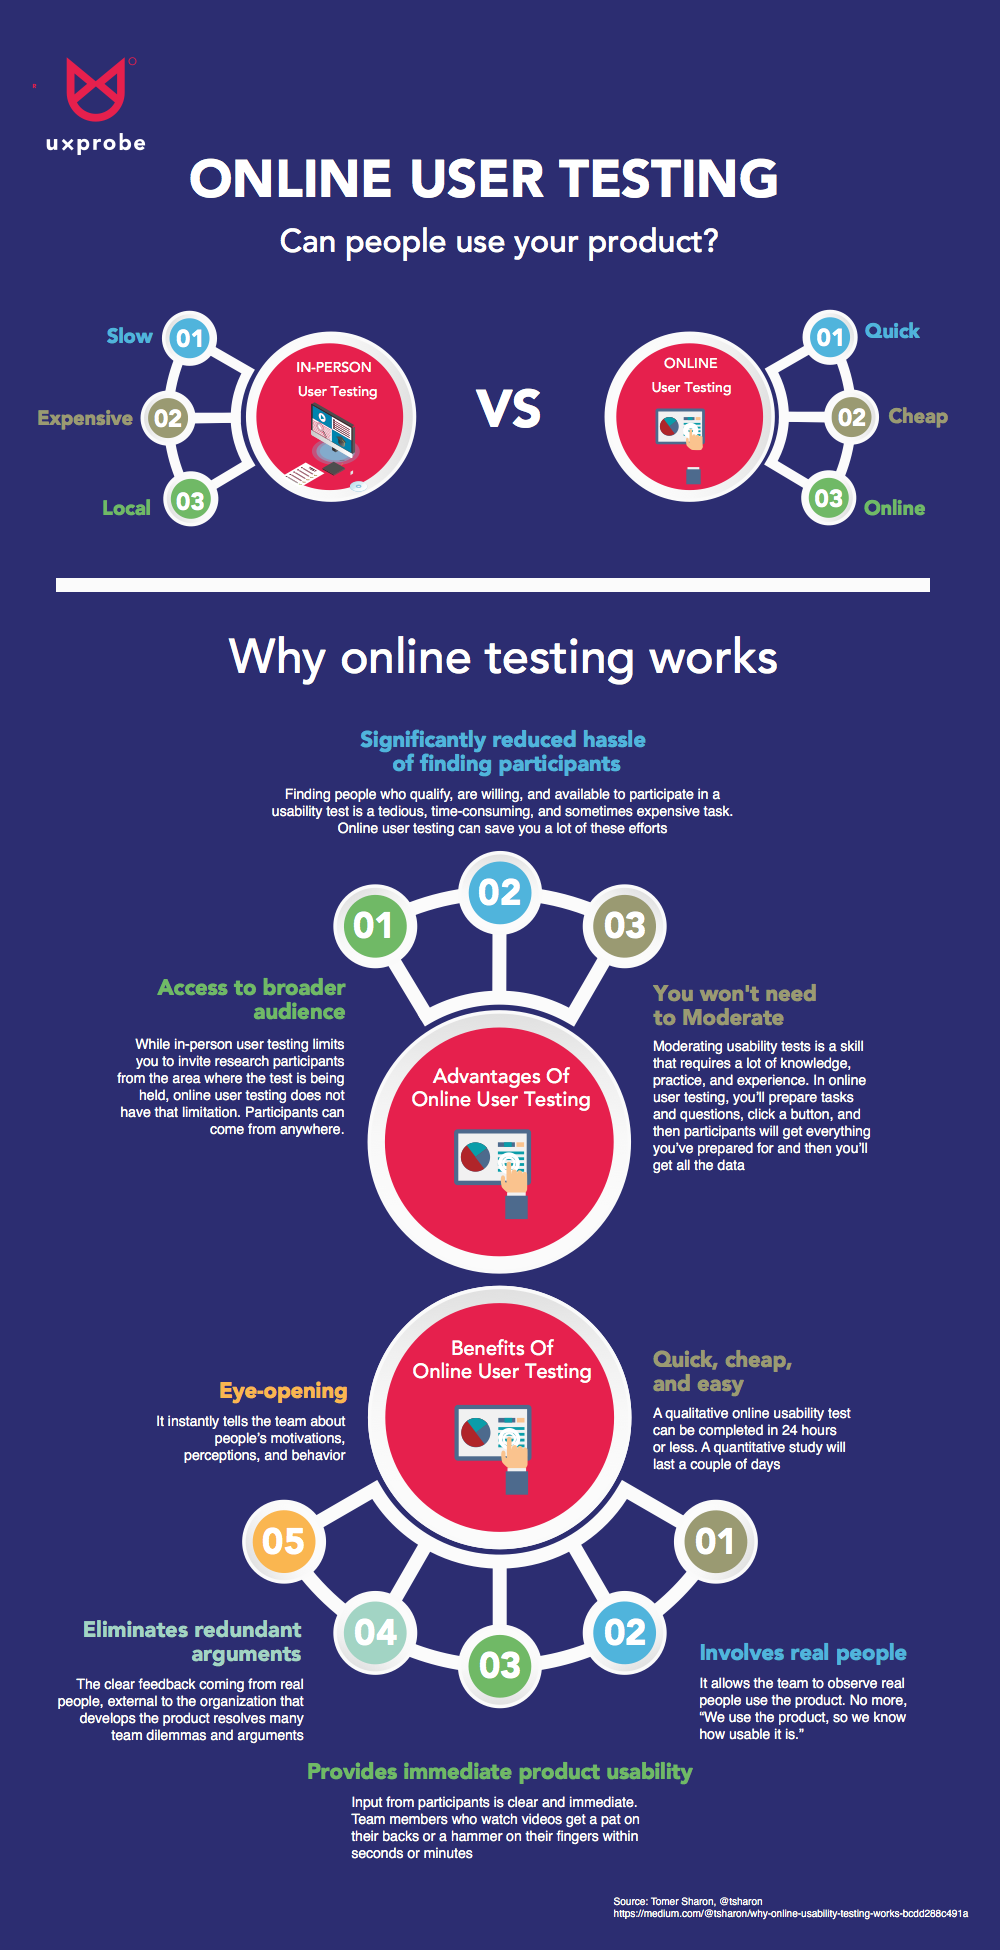 Why online user testing works INFOGRAPHIC